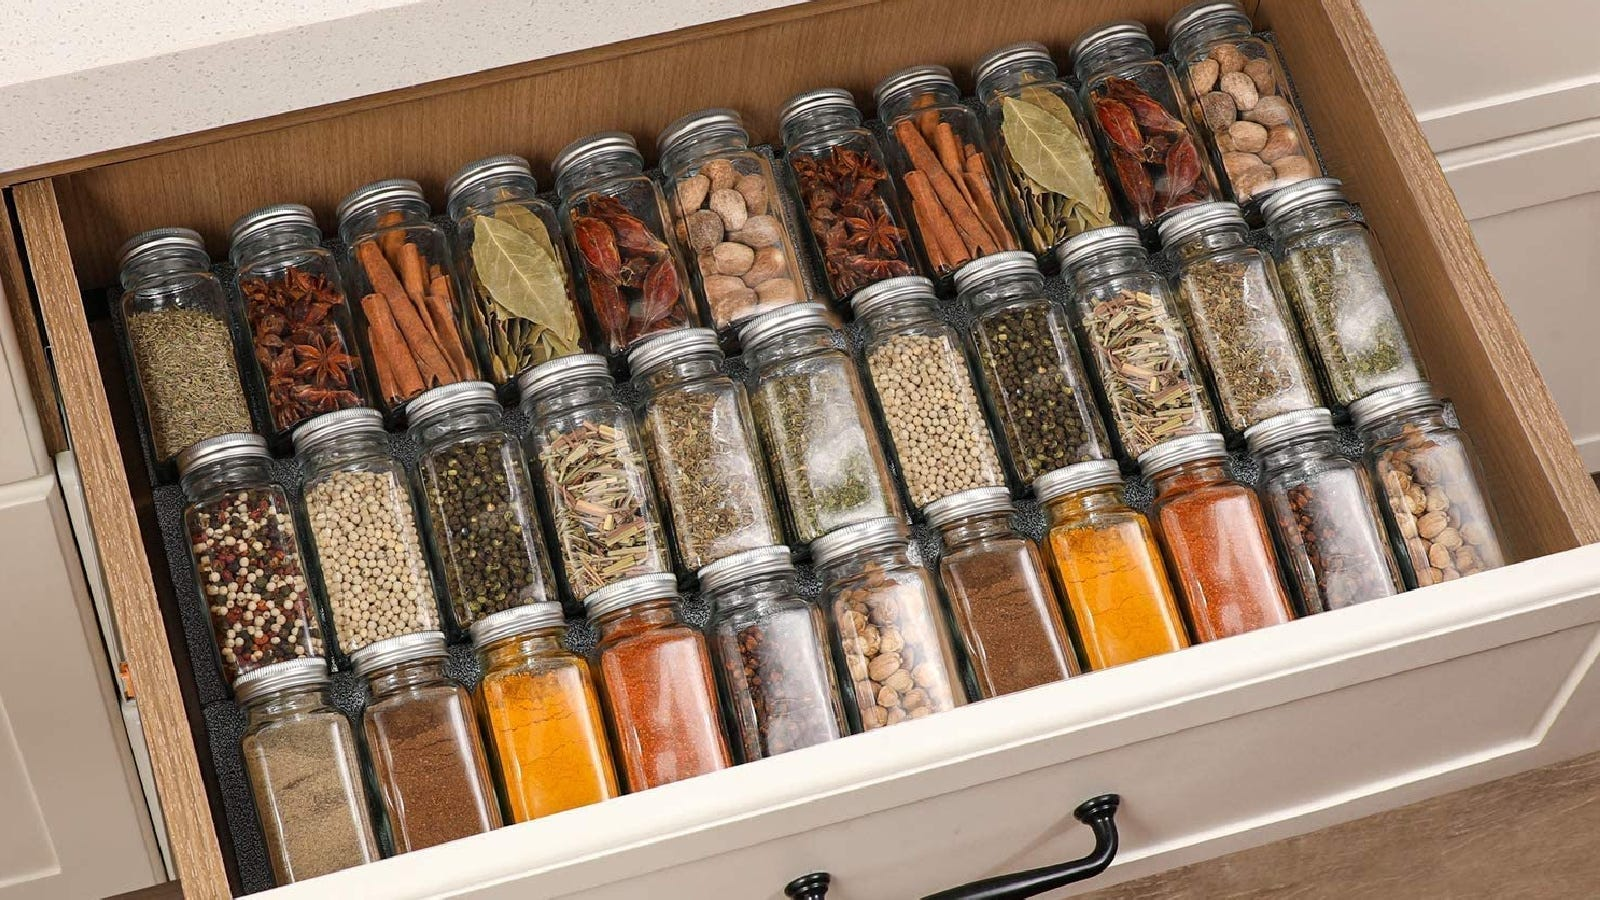 A drawer full of jars filled with dried herbs and spices, featuring jars by Aozita.